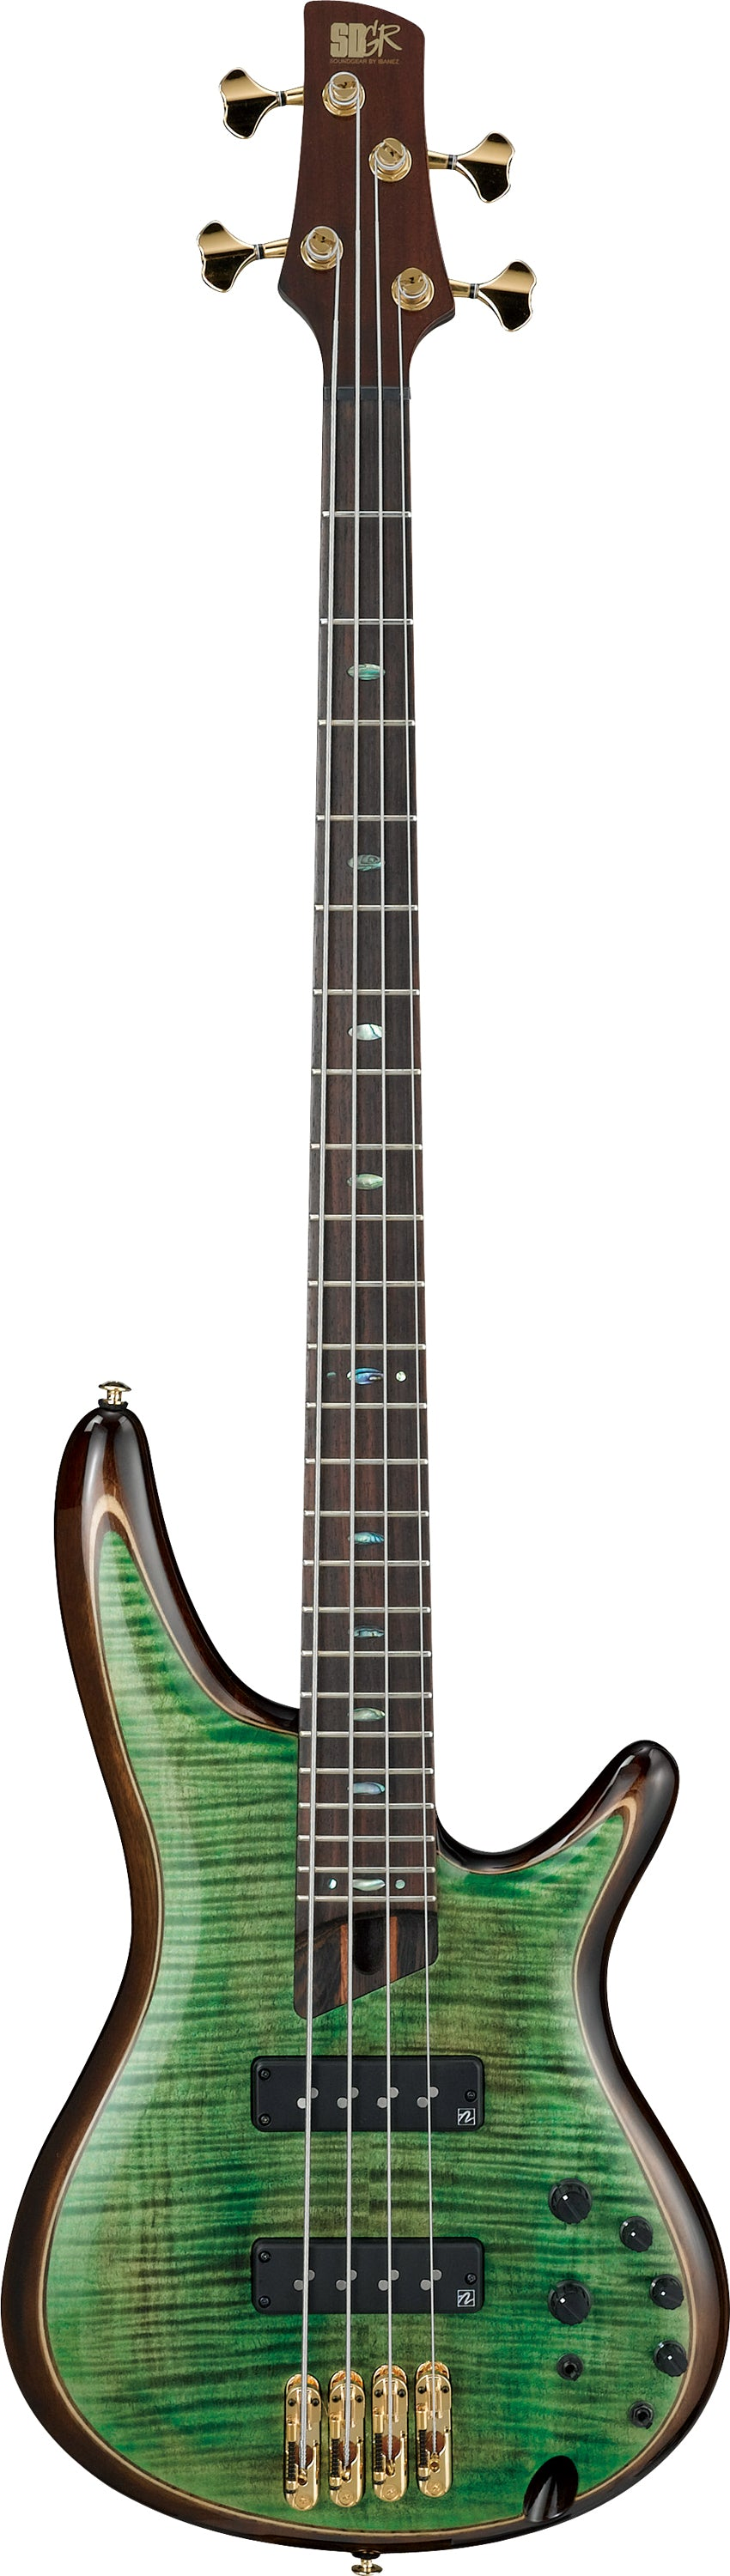 Ibanez SR1400E-MLG SR Premium 4 String Electric Bass - Mojito Lime Green